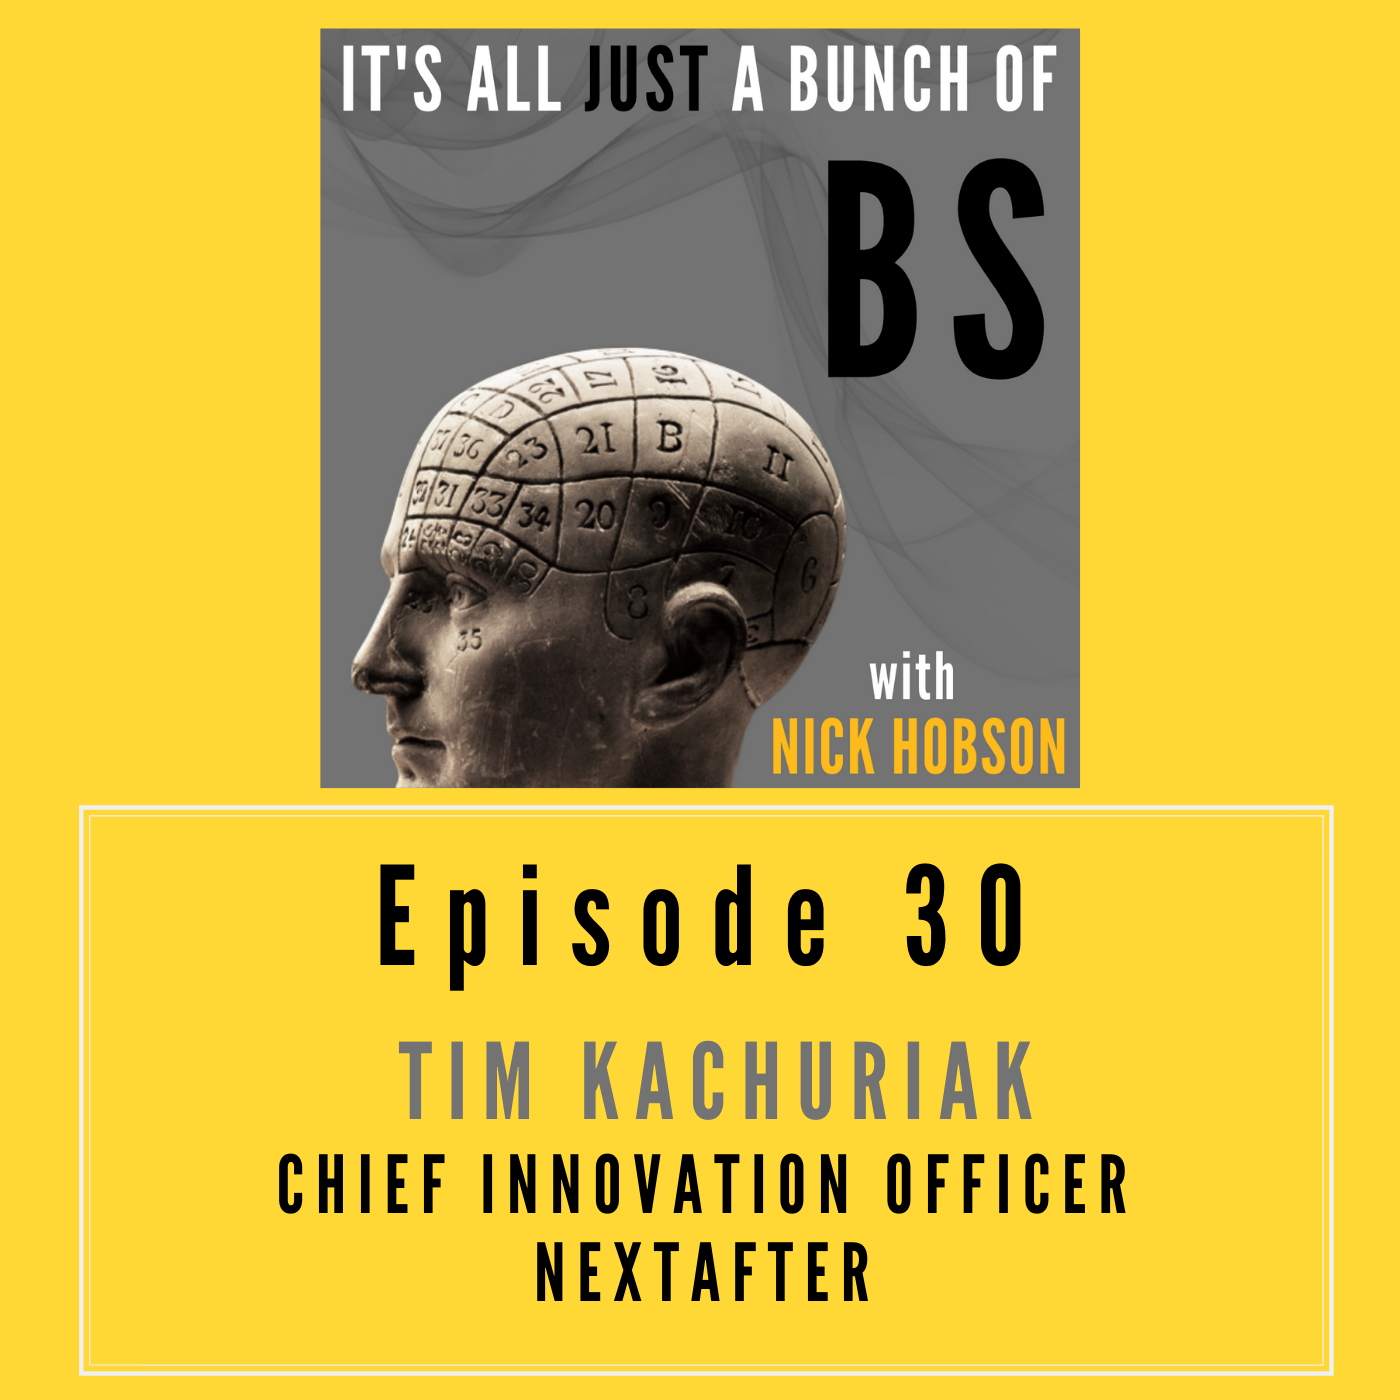 Episode 30 with TIM KACHURIAK: What Inspires People to Give?